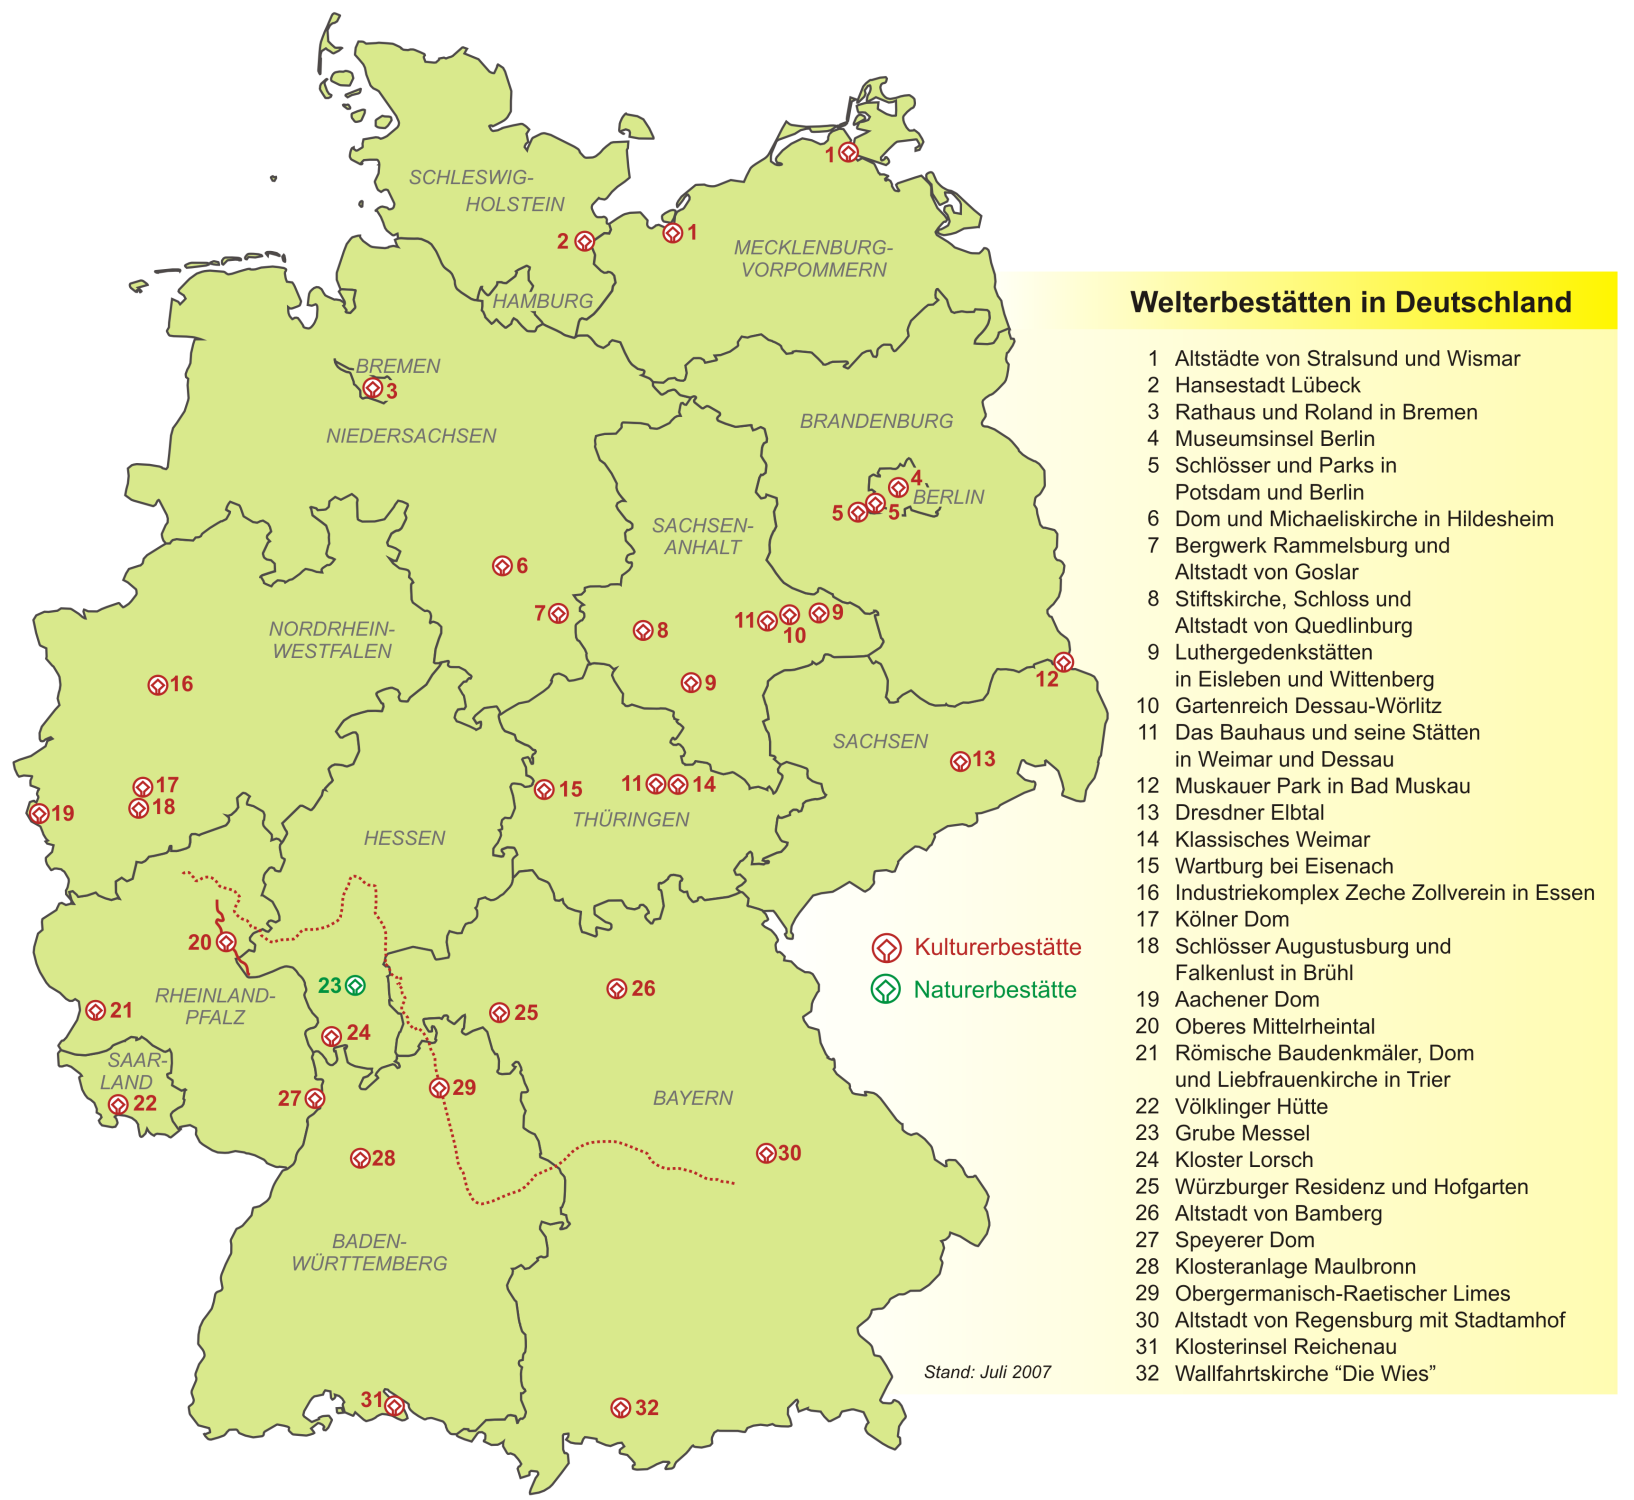 Heritage Sites in Germany 2007